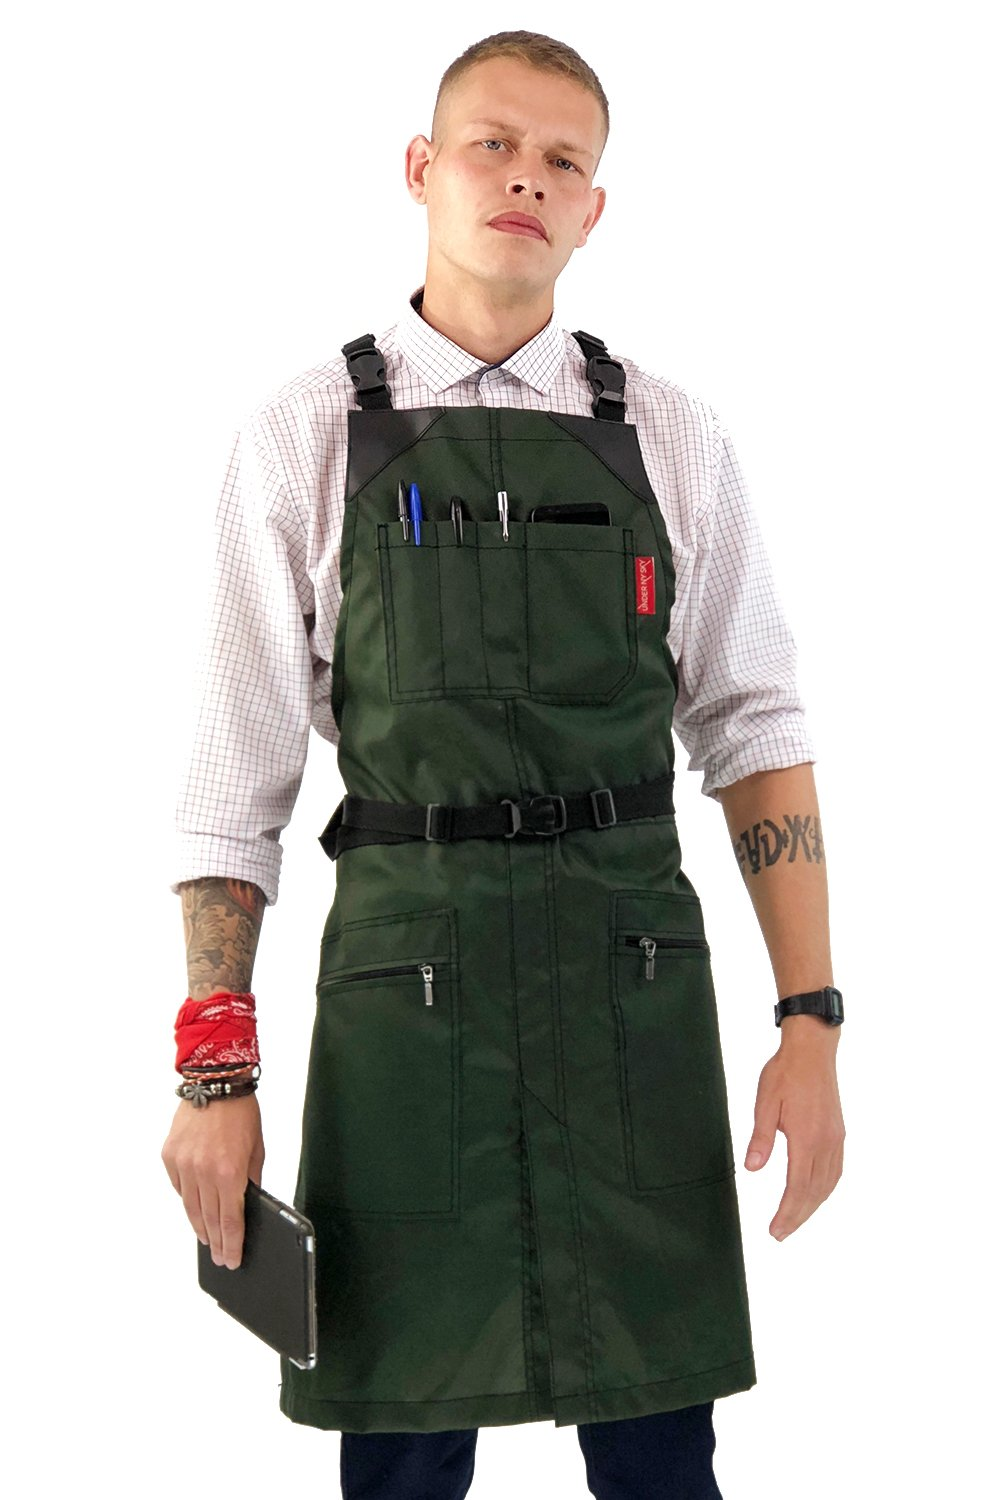 Under NY Sky Cross-Back Barber Green Apron – Heavy-Duty Nylon, Water and Chemical Resistant, Zipped Pockets, No-Tie, Split-Leg – Adjustable for Men, Women – Pro Hair Stylist, Salon, Colorist, Artist